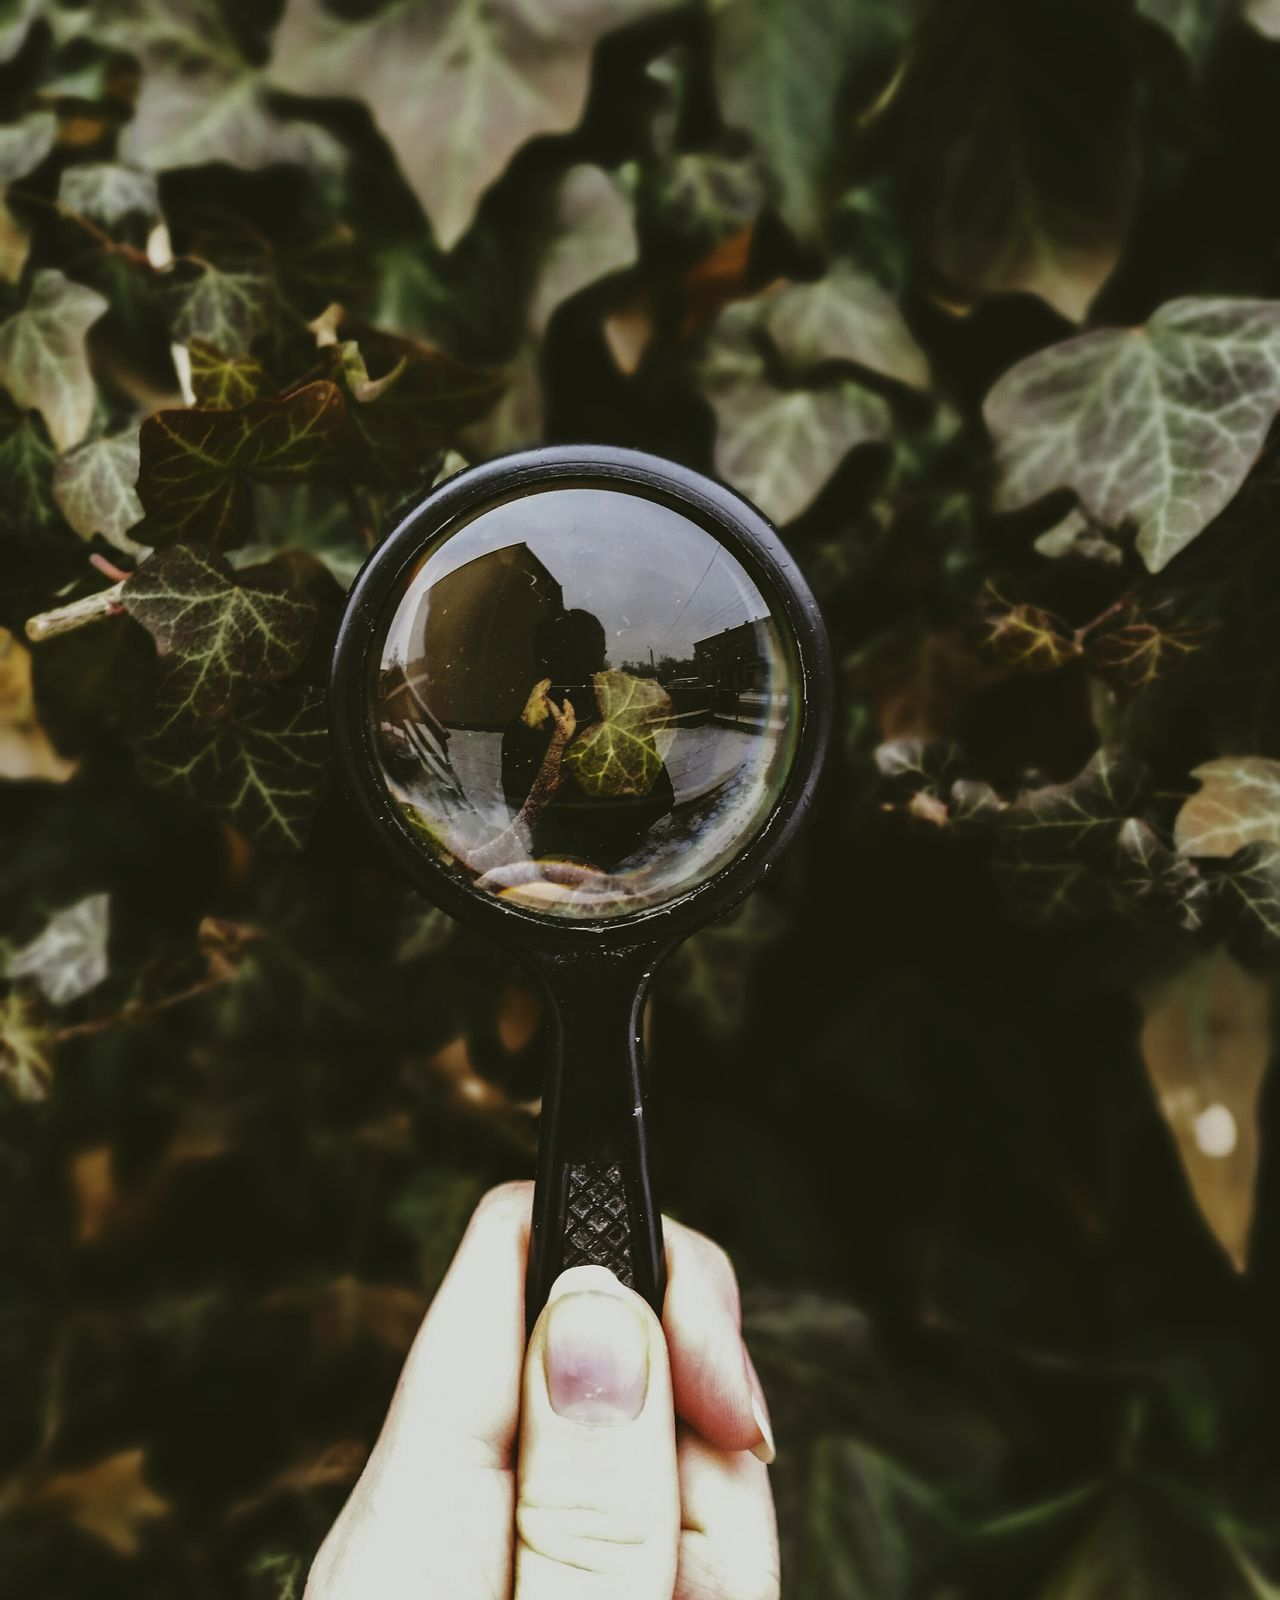 Lieblingsteil garden Creatively Perspective magnifier Nature mobile photography Reflection ivy hand